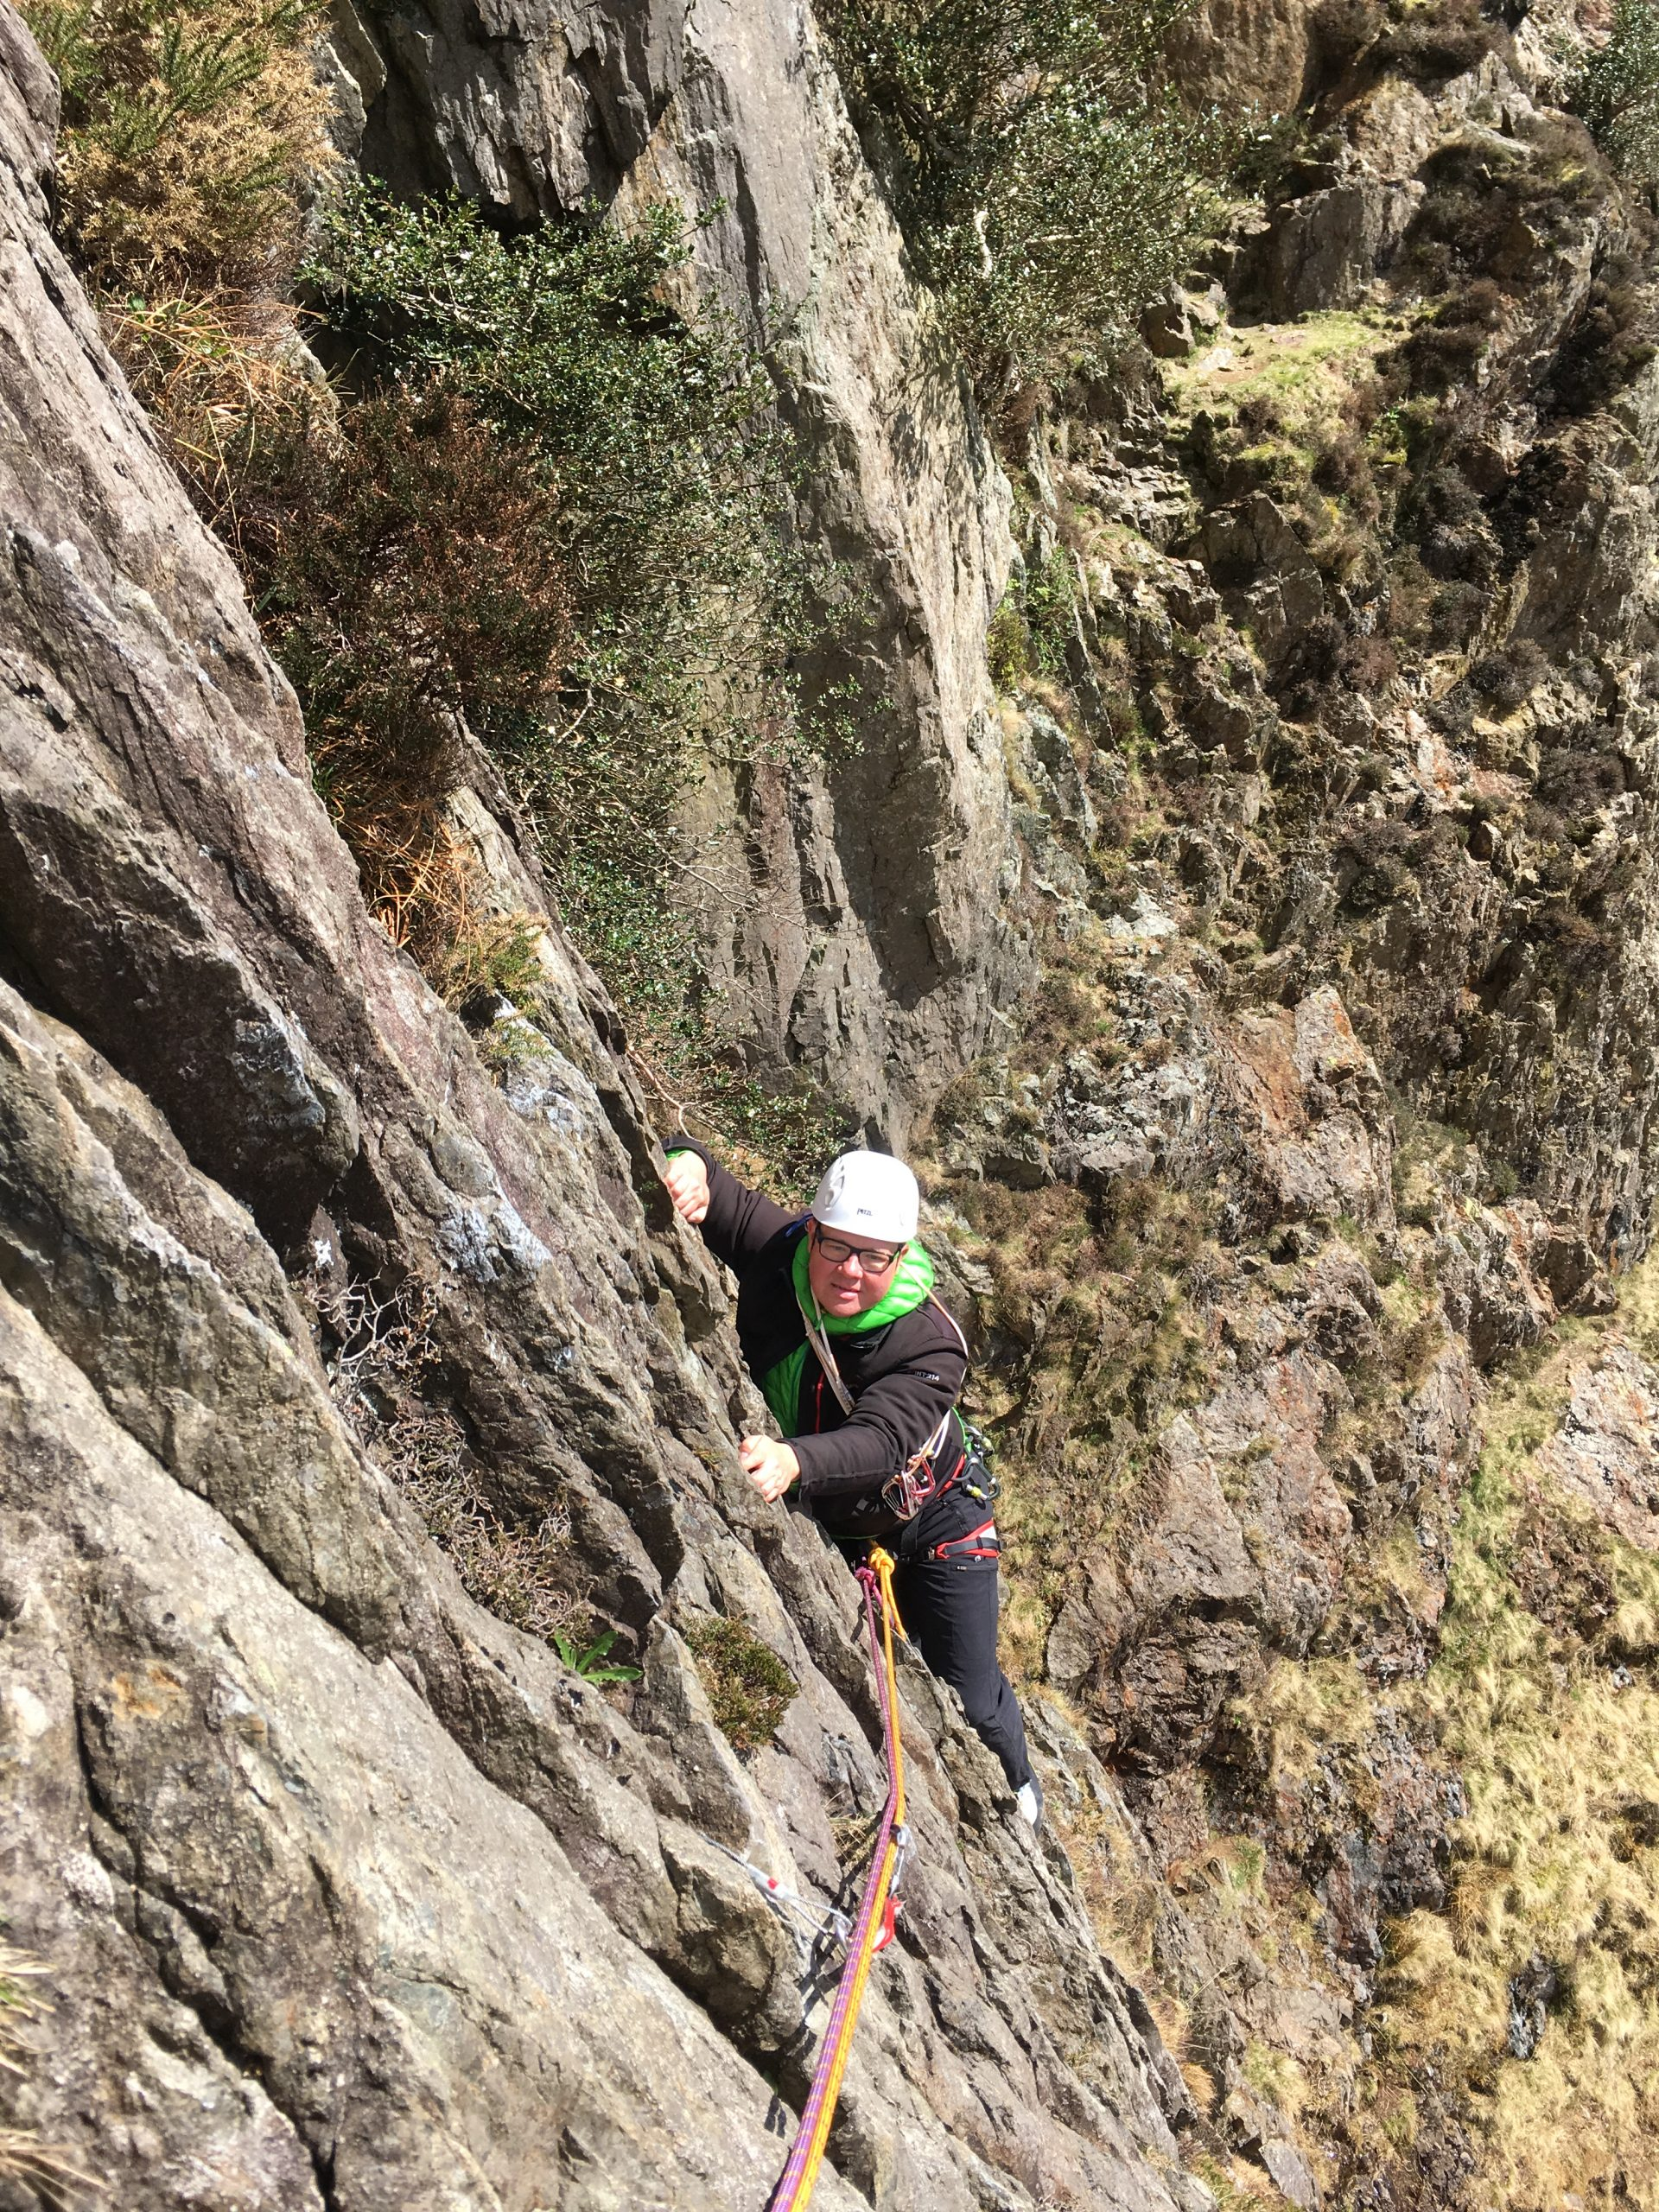 A climber seconding the classic route Crackstone Rib during a rock climbing course in Snowdonia